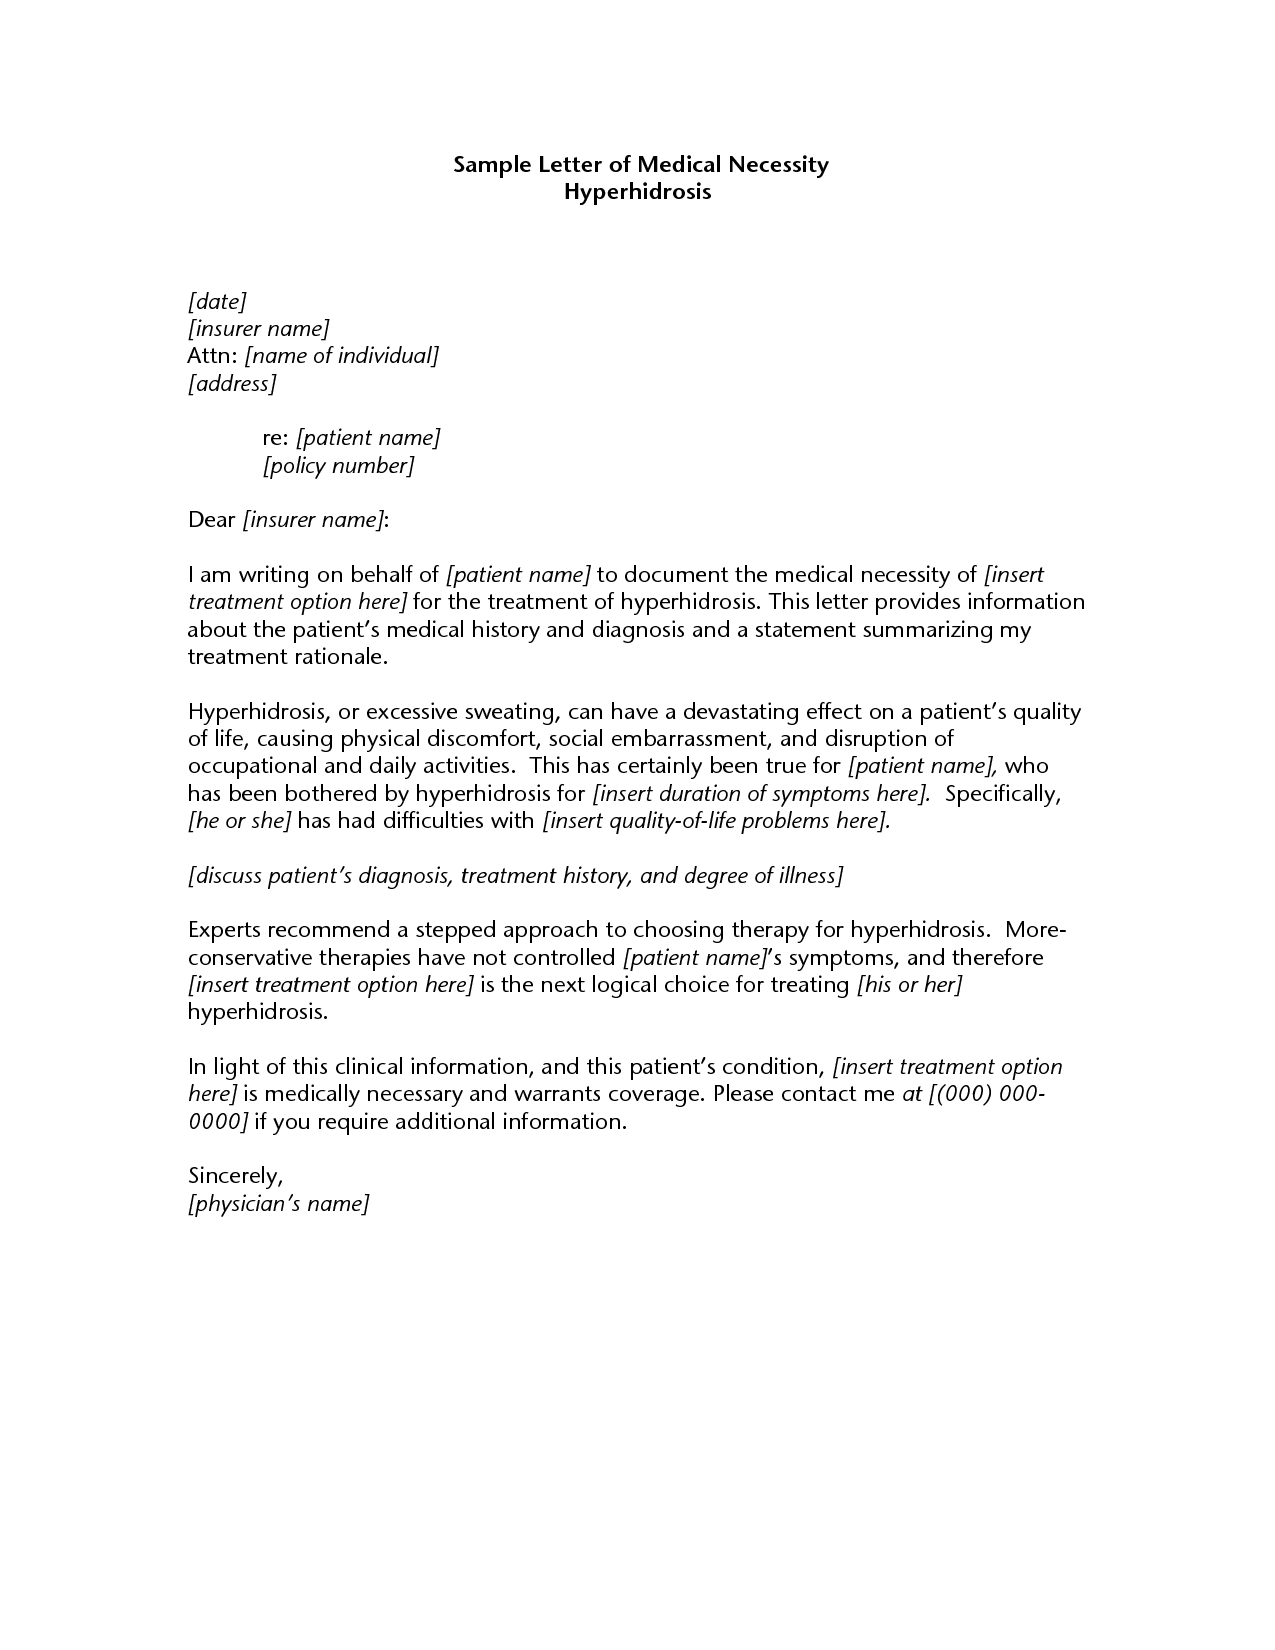 medical-necessity-appeal-letter-template-11 Sample Financial Aid Appeal Letter Template on after failing, sample template, maximum time frame, successful college, sample parent, for death,